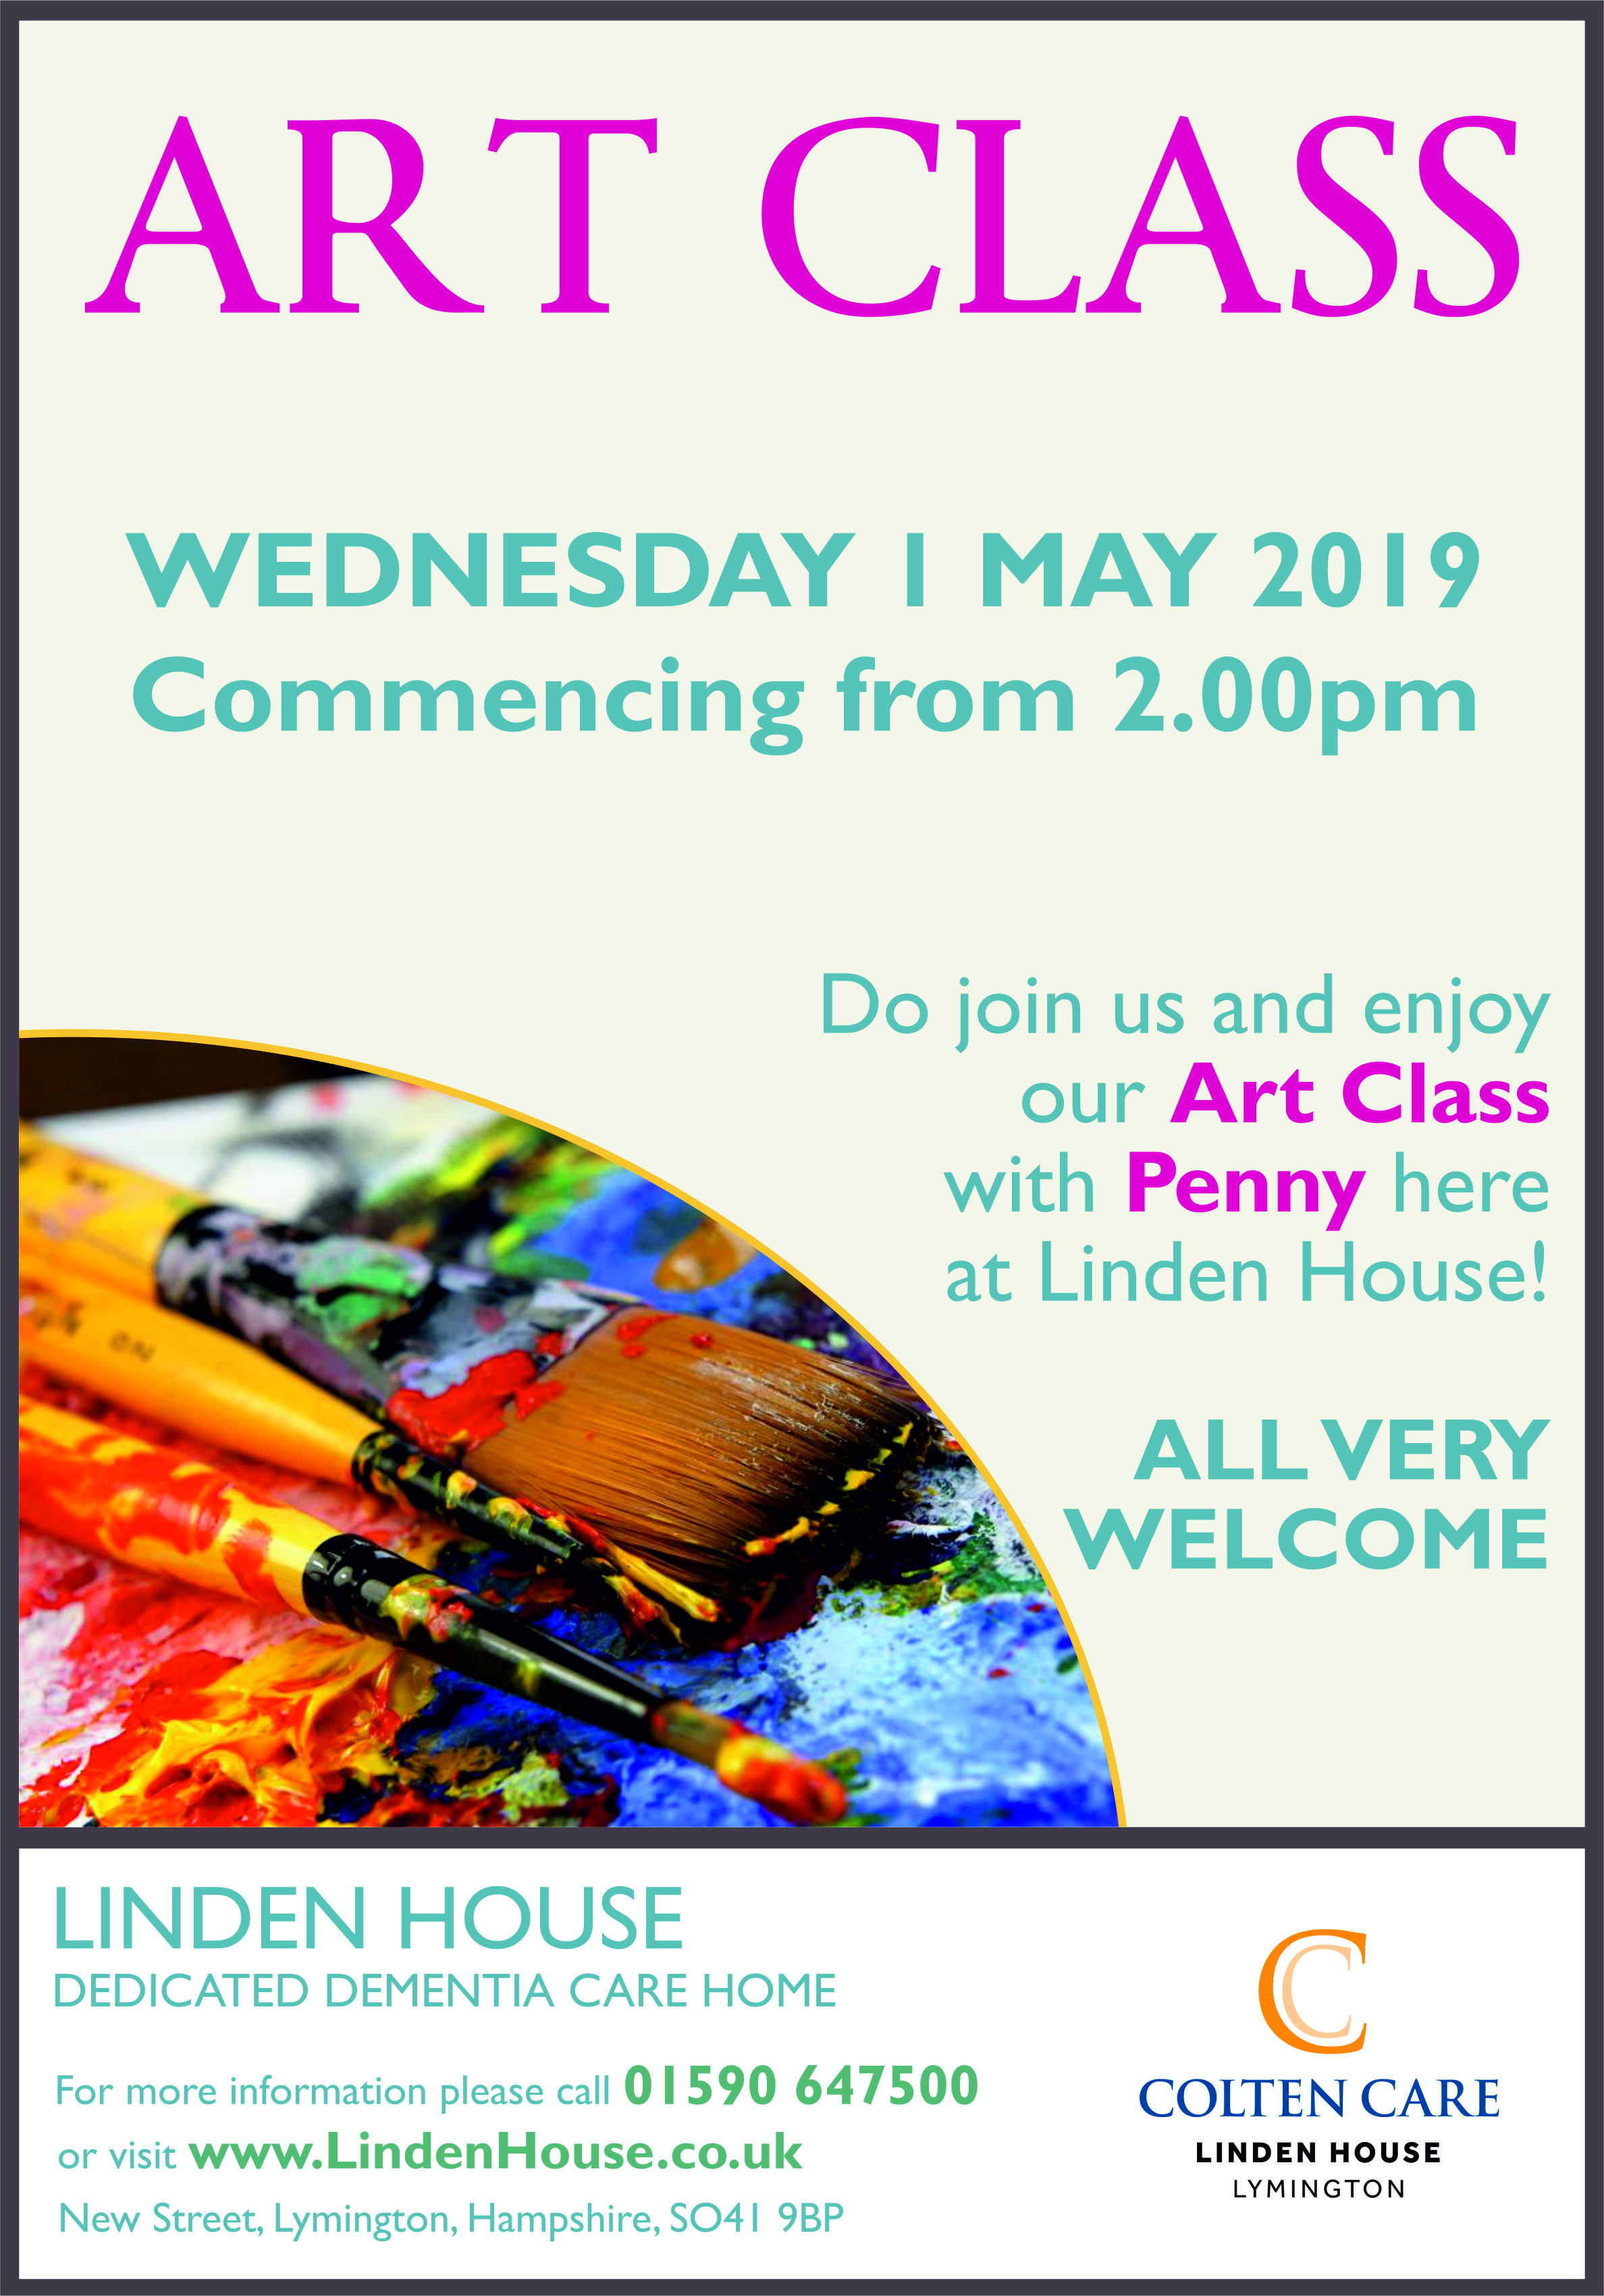 Linden House - Art Class Poster 1 May - 15 Apr 2019